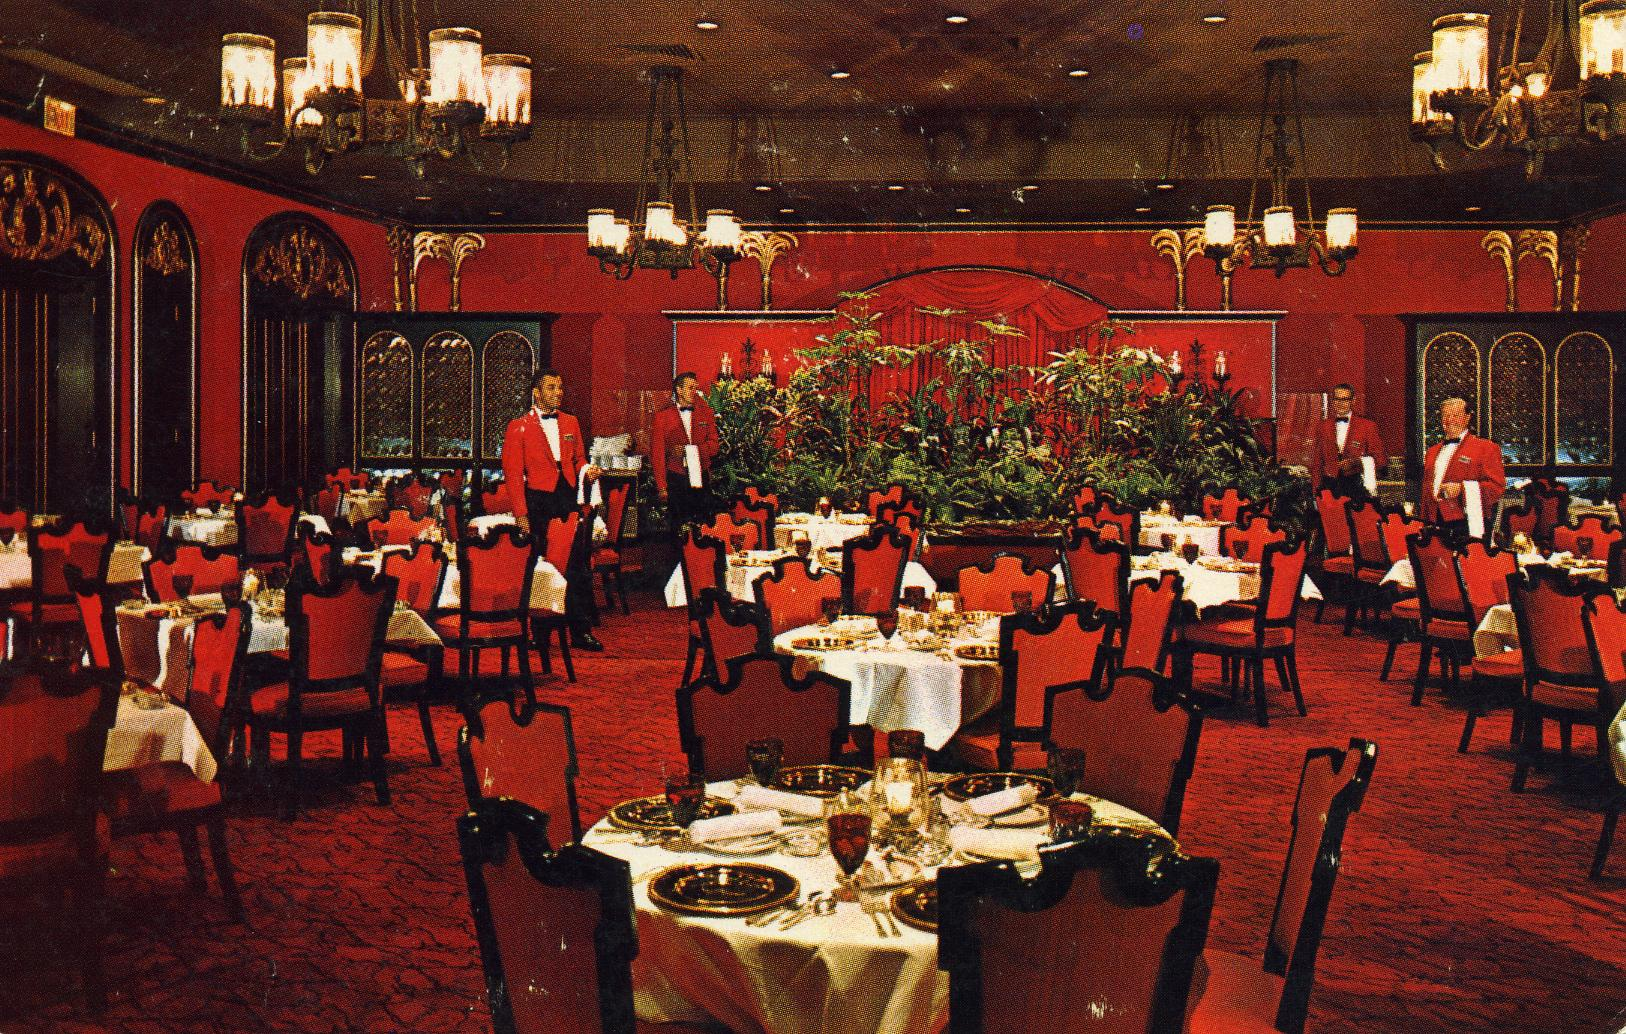 Rendezvous Room Roosevelt Hotel New York NY plush and elegant. A visit to the age of splendor in New Orleans - flaming dishes, prime ribs, steaks and service unequaled in the world